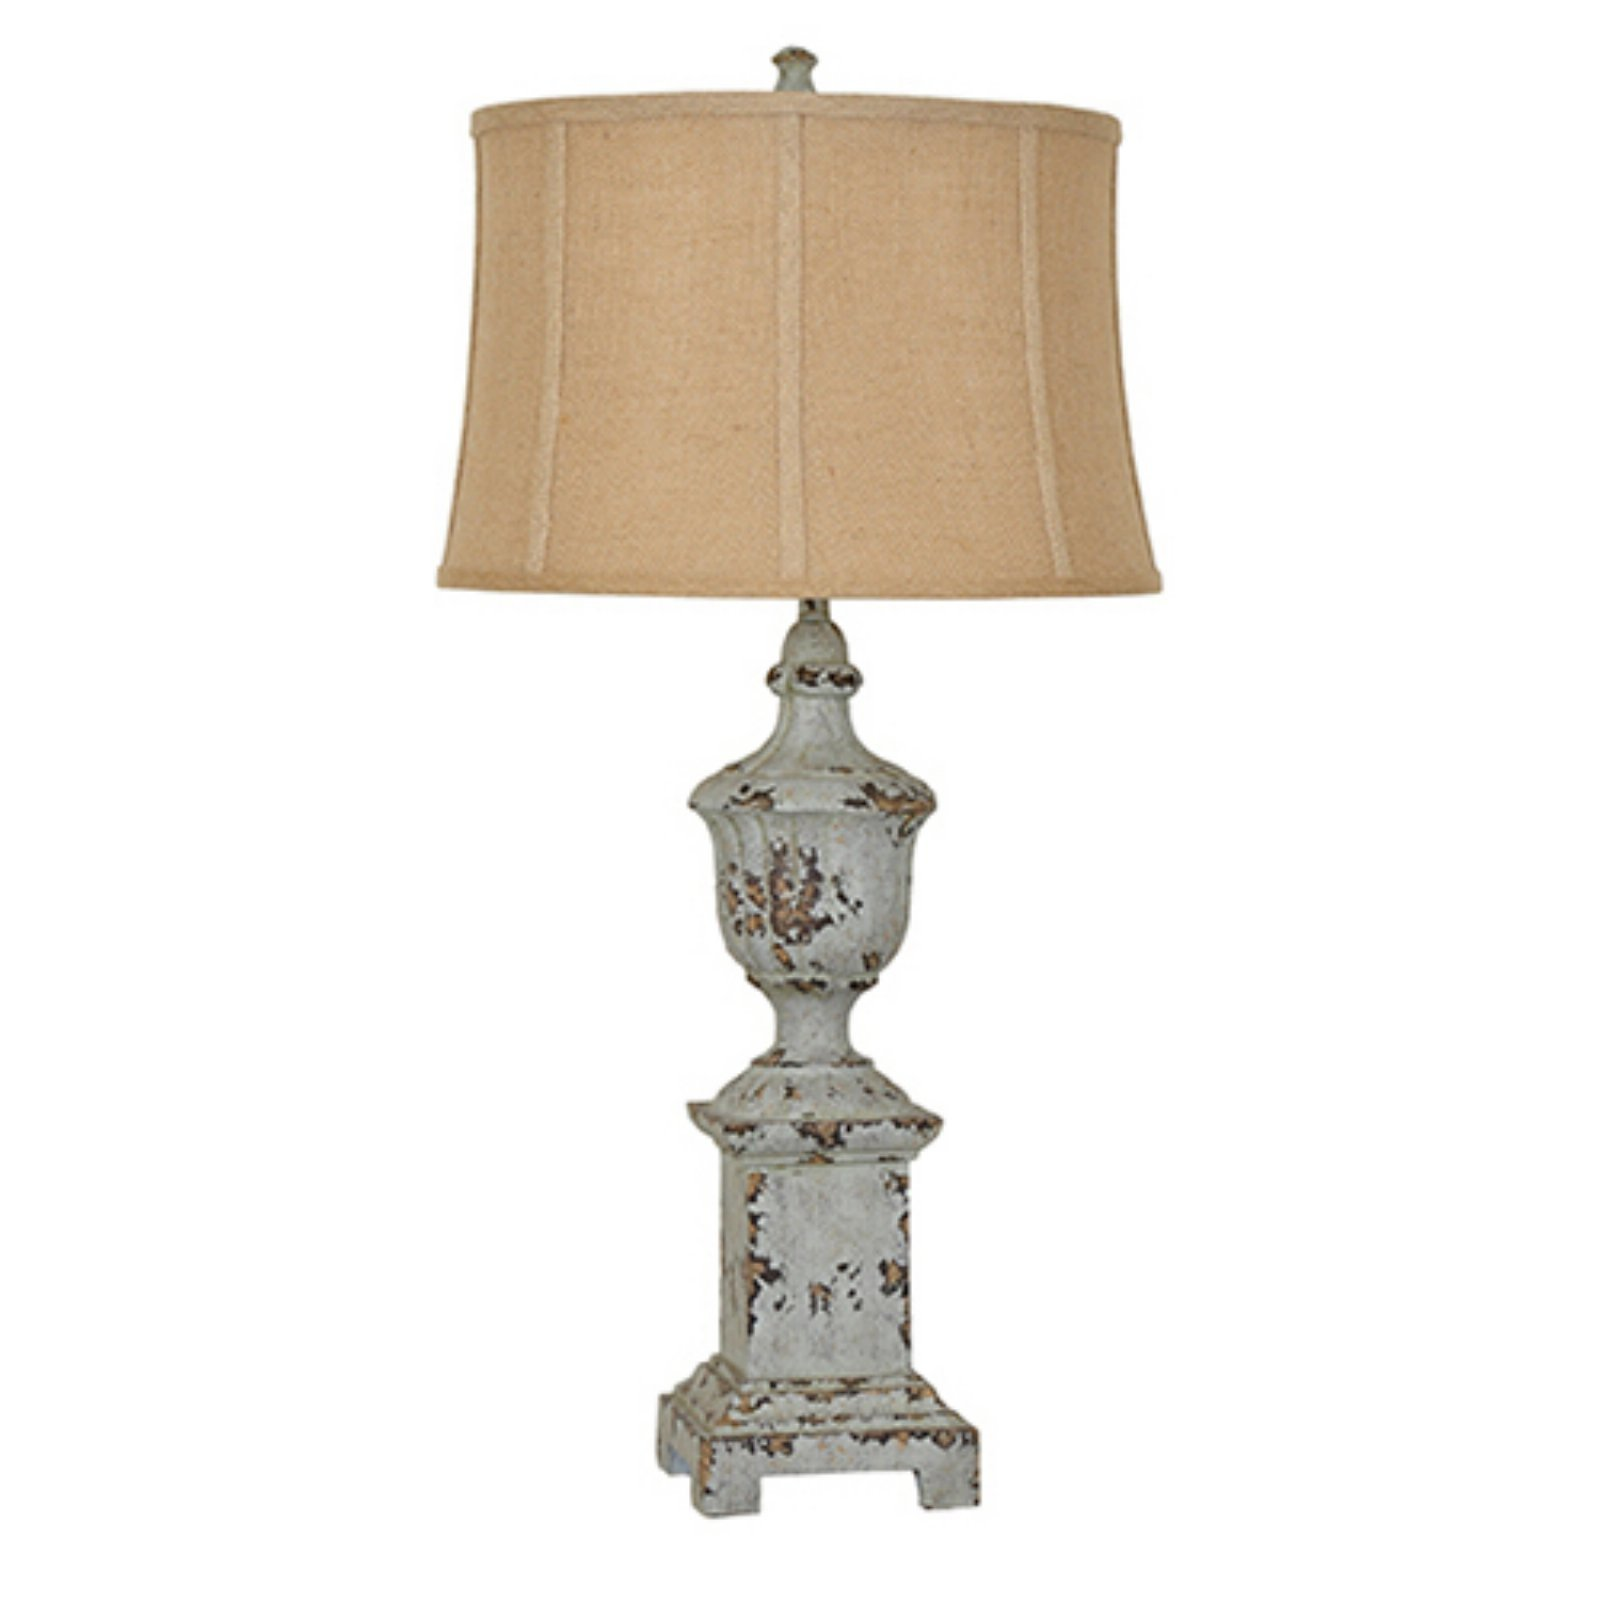 Blue Table Lamps Bedroom Best Of Crestview Collection French Heritage Table Lamp